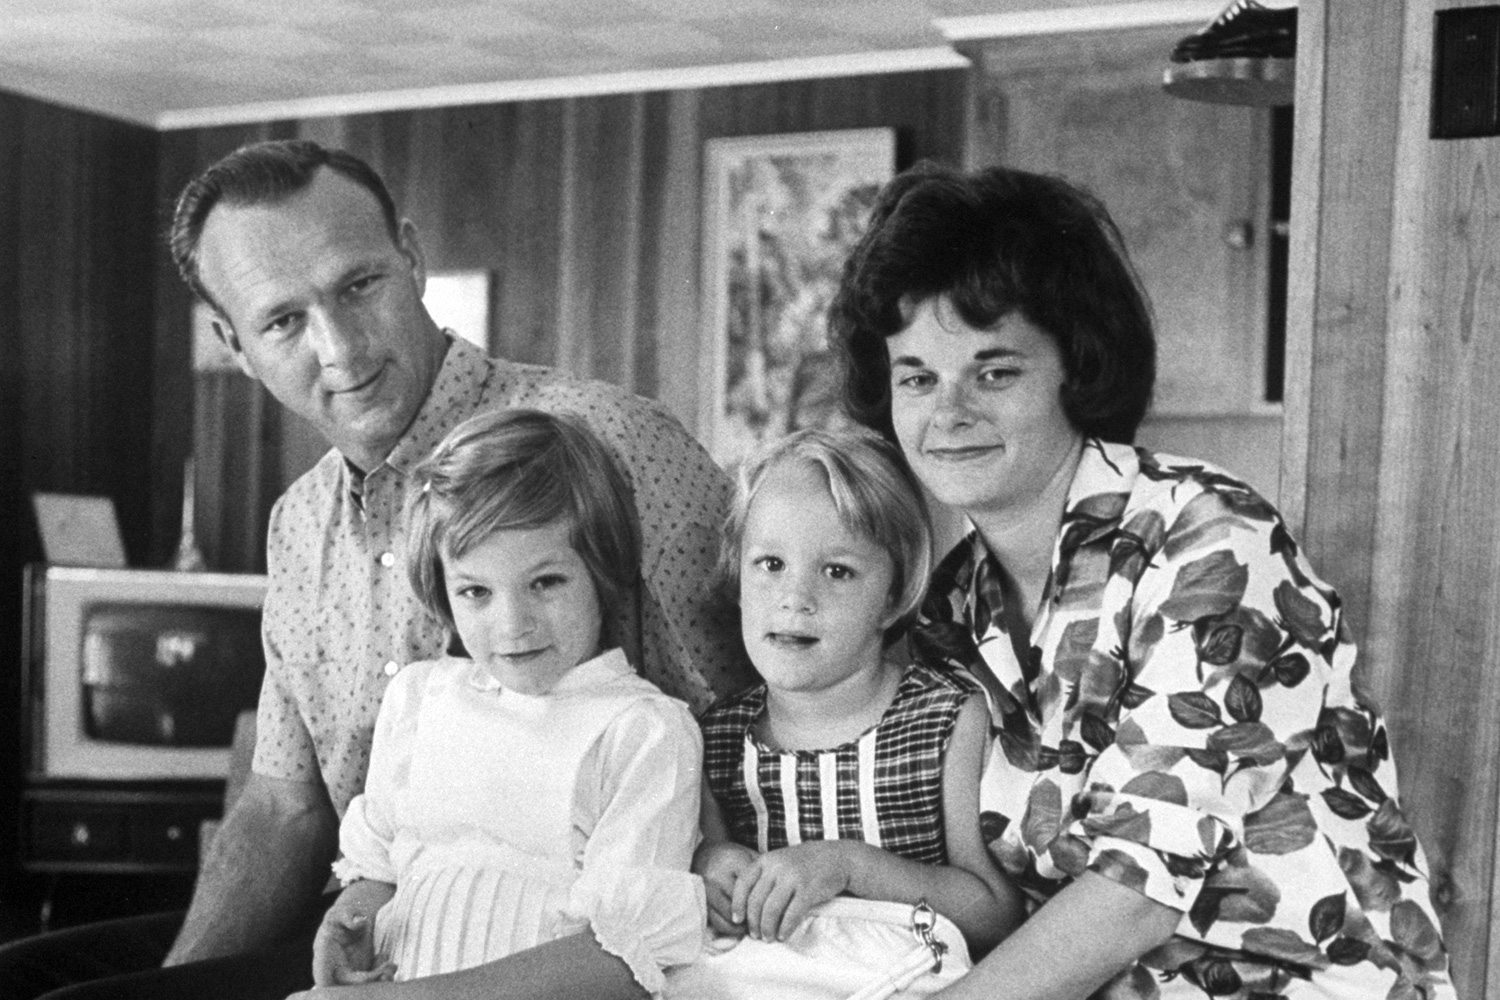 Arnold Palmer Pictures His Life In Photographs: Arnold Palmer: A Remarkable Life • Kingdom Magazine